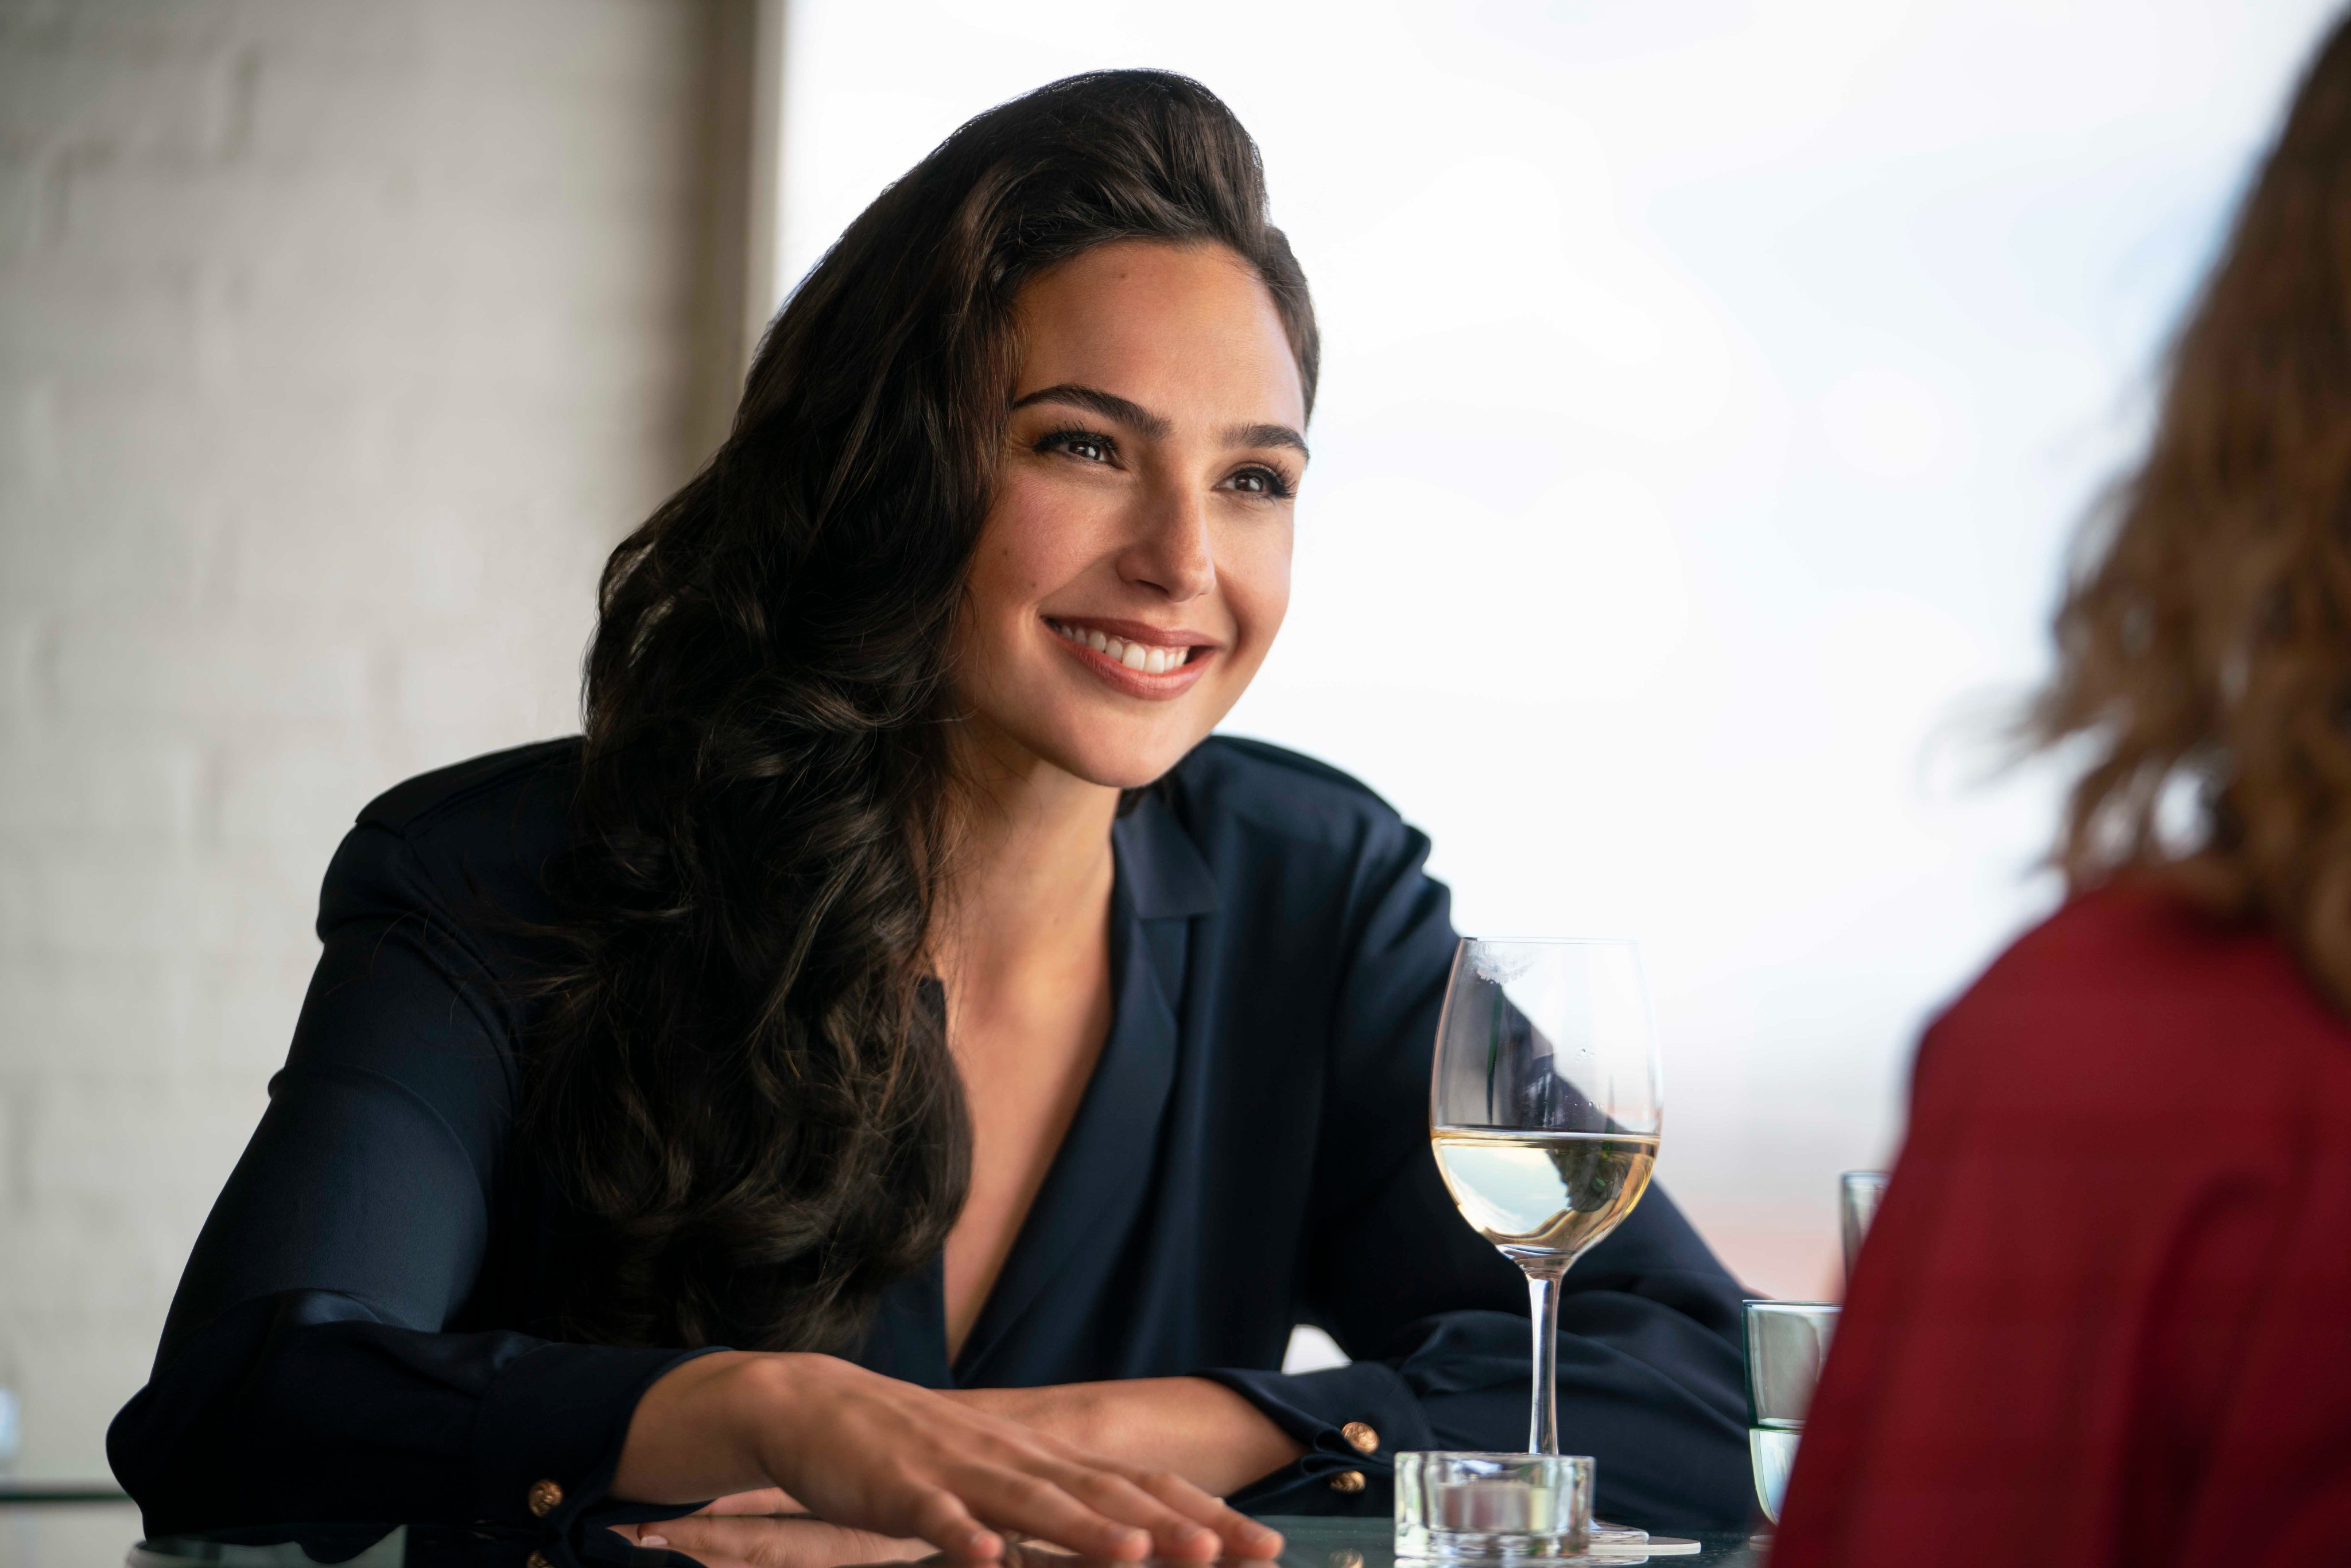 Gal Gadot in Wonder Woman 1984 (2020)